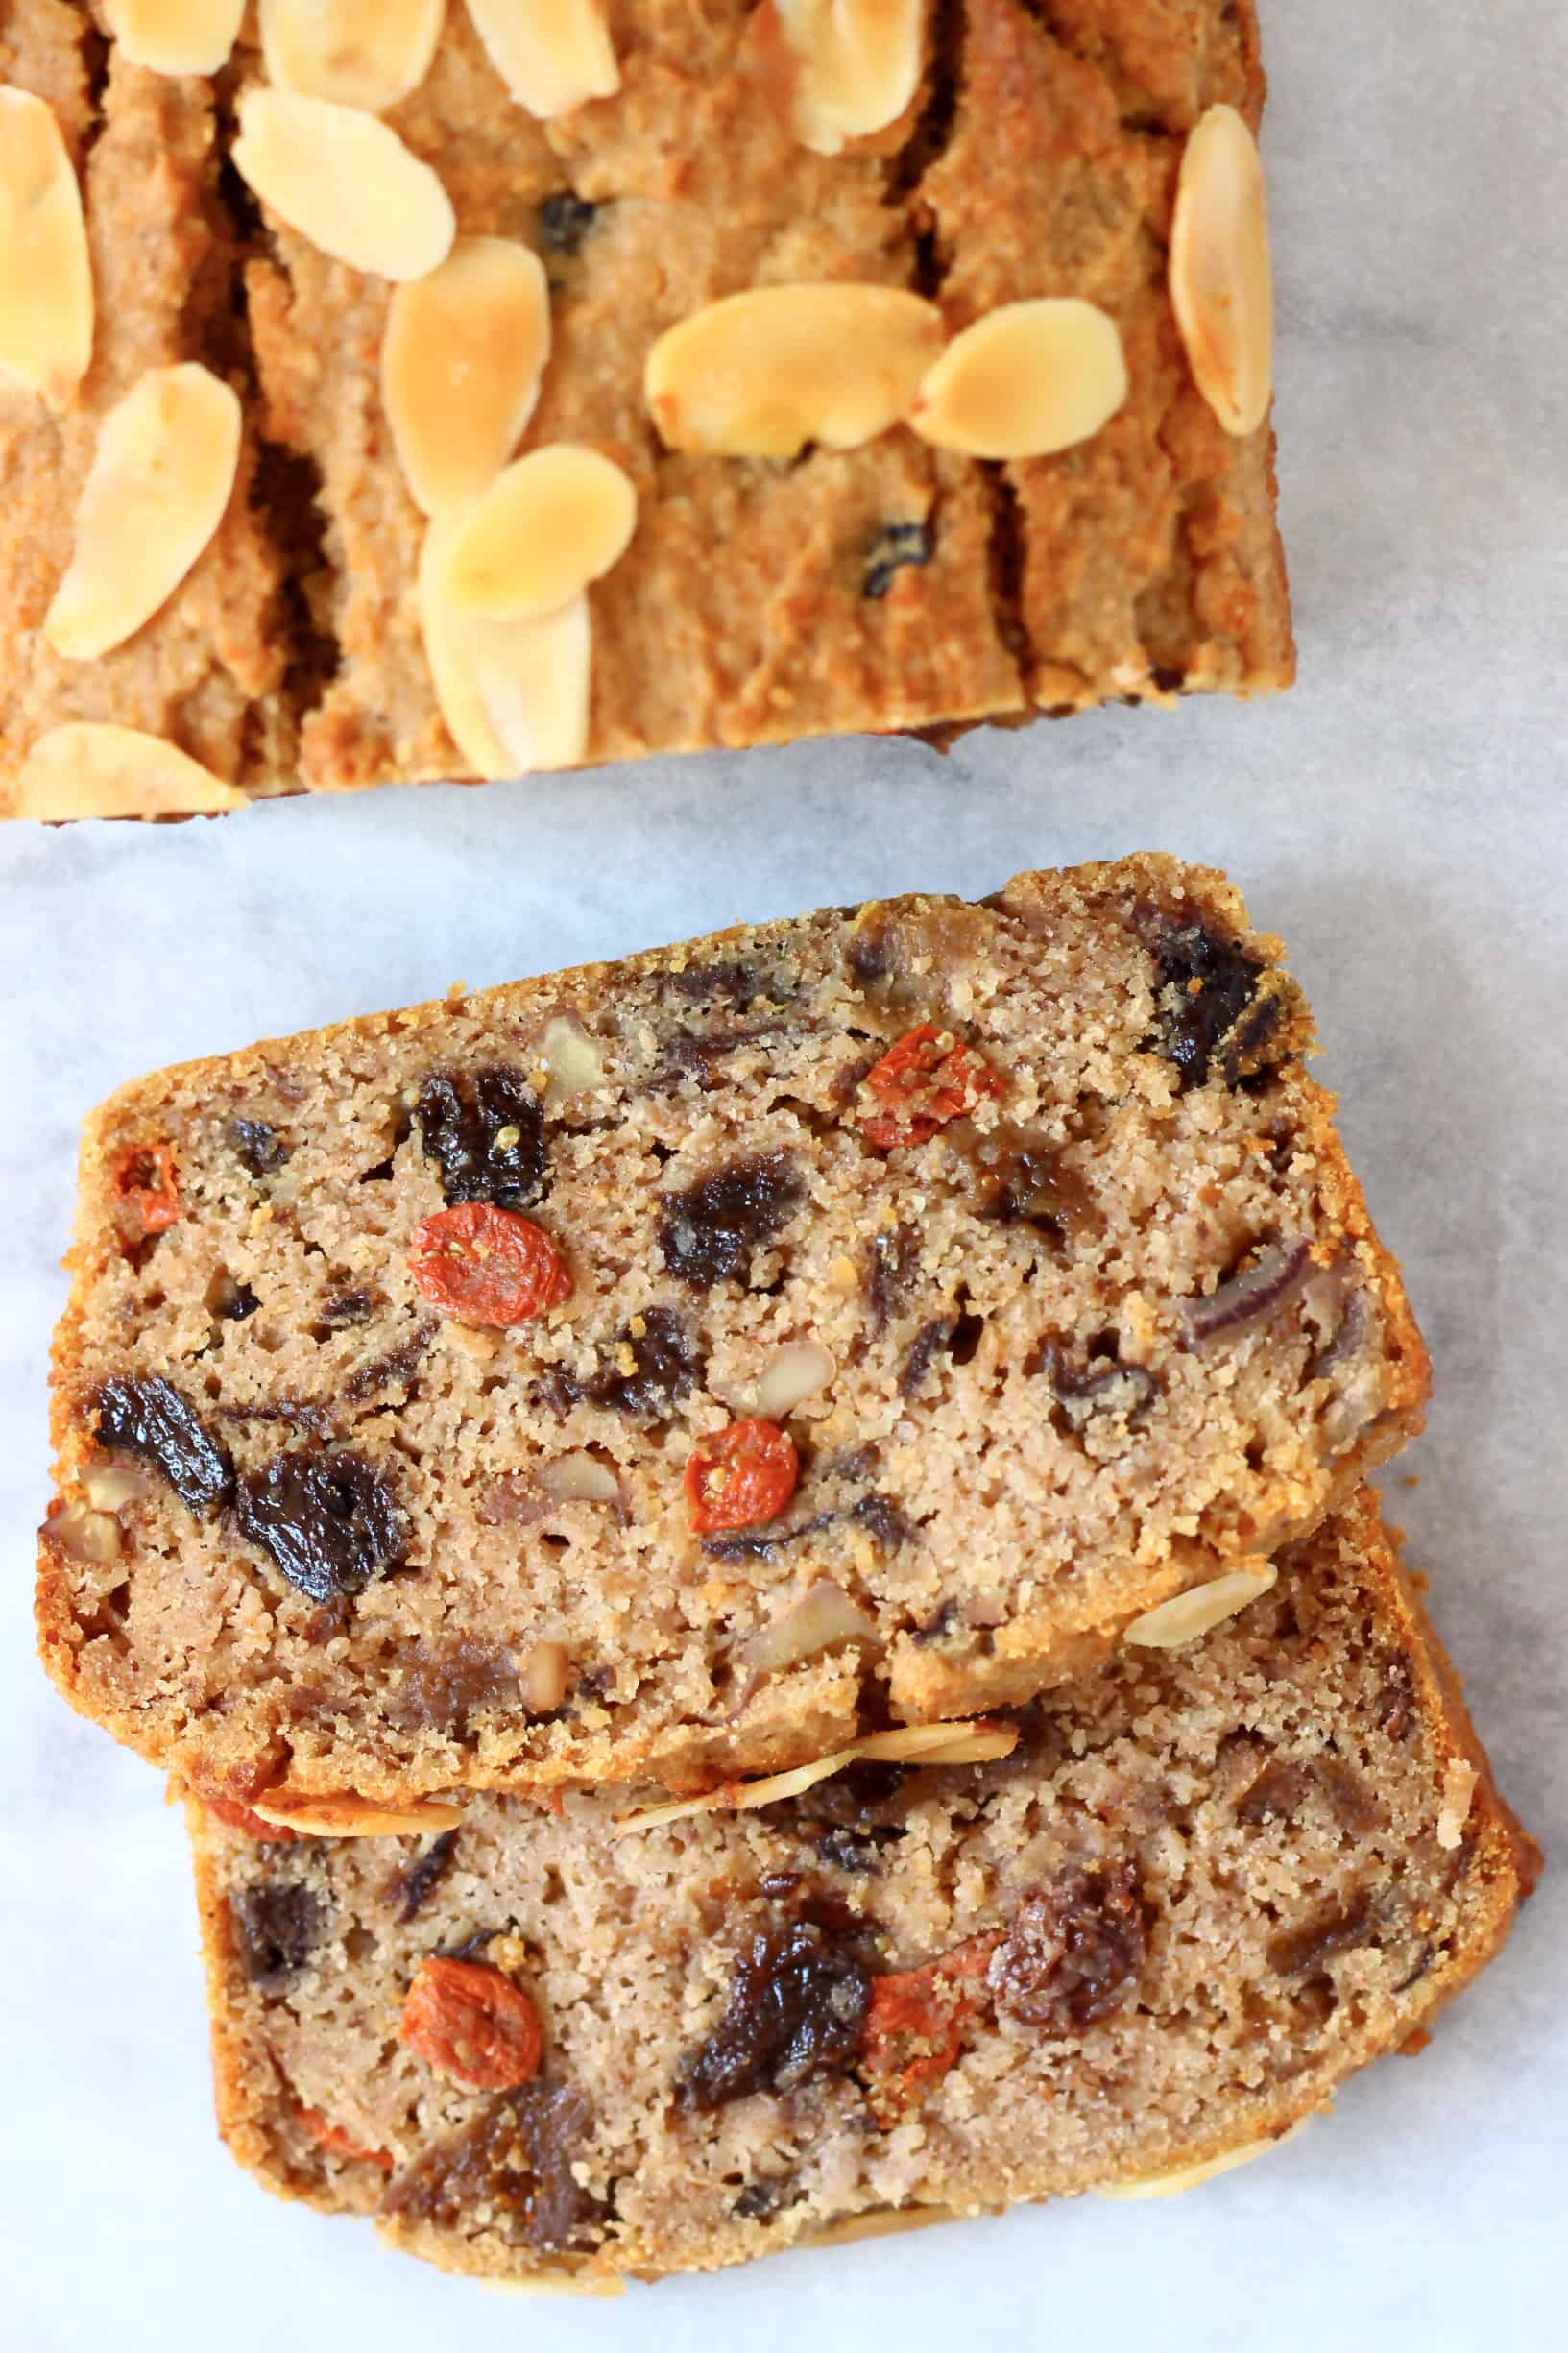 A gluten-free vegan fruit cake with two slices next to it